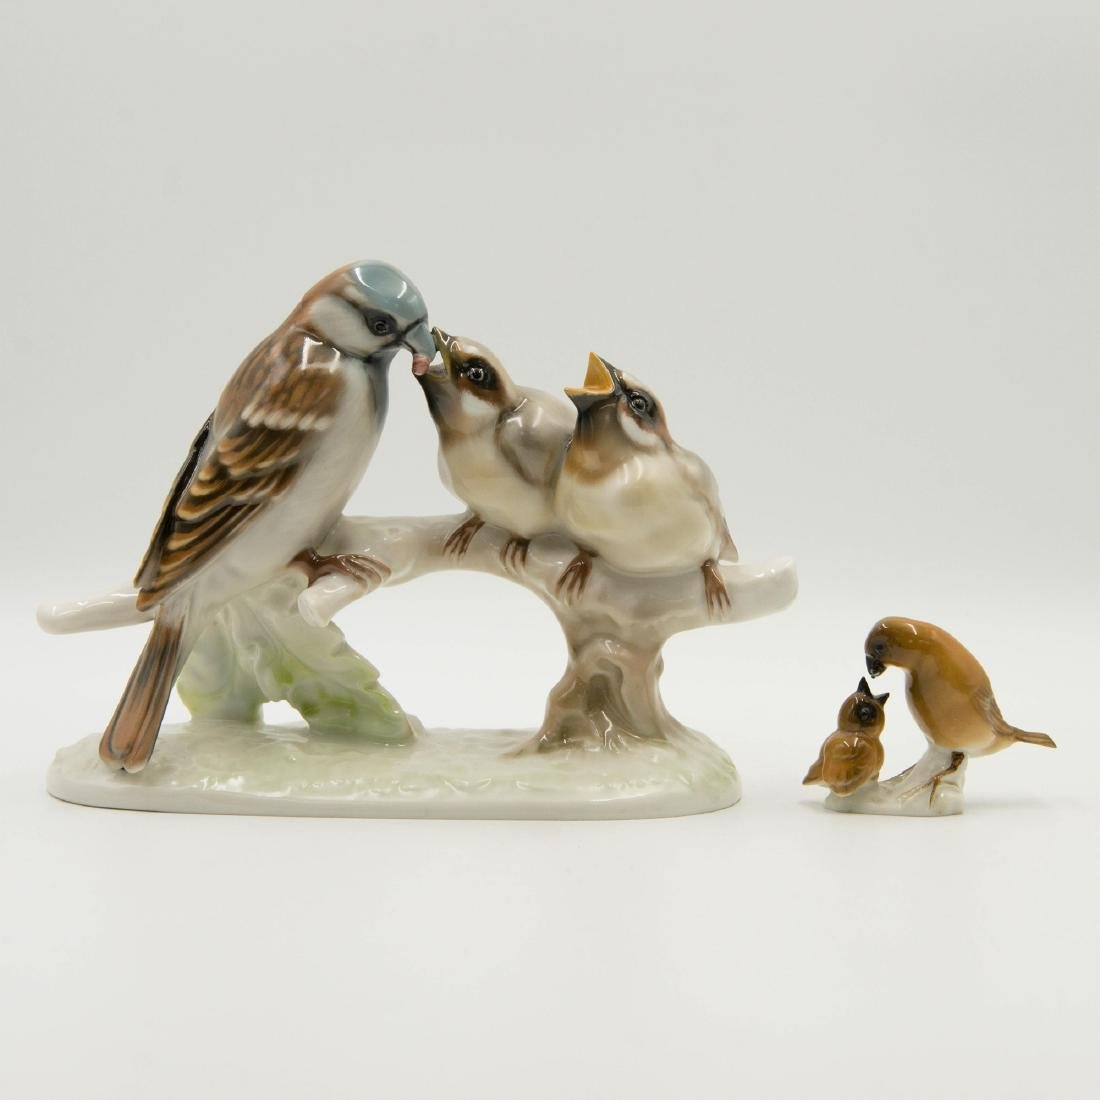 GROUP OF 2 HUTSCHENREUTHER BIRD FIGURINES